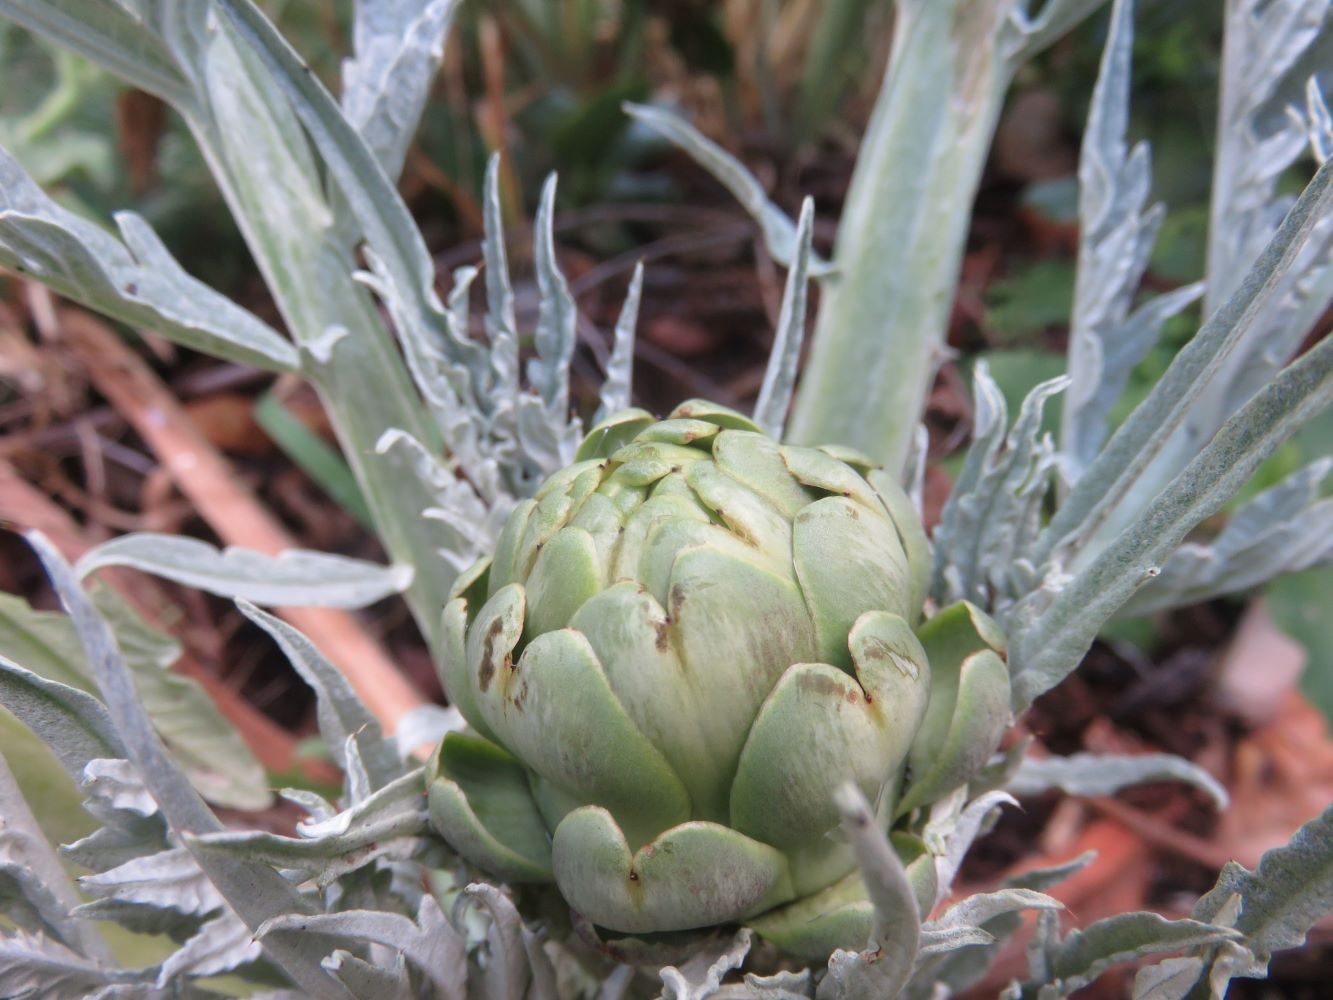 Artichoke seed looks fluffy but its very prickly